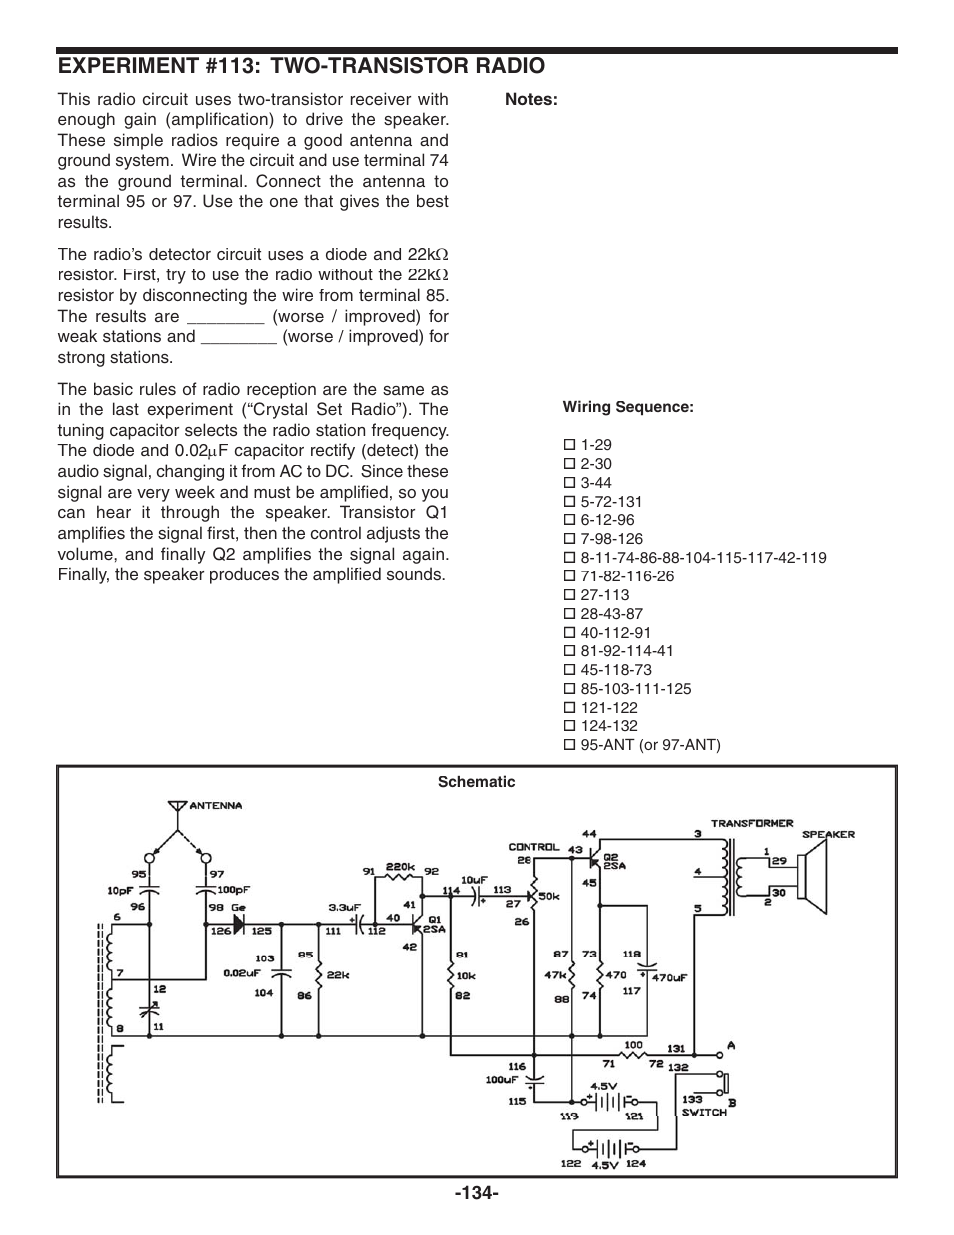 Experiment #113: two-transistor radio | Elenco 130-in-1 Electronics  Playground User Manual | Page 134 / 160